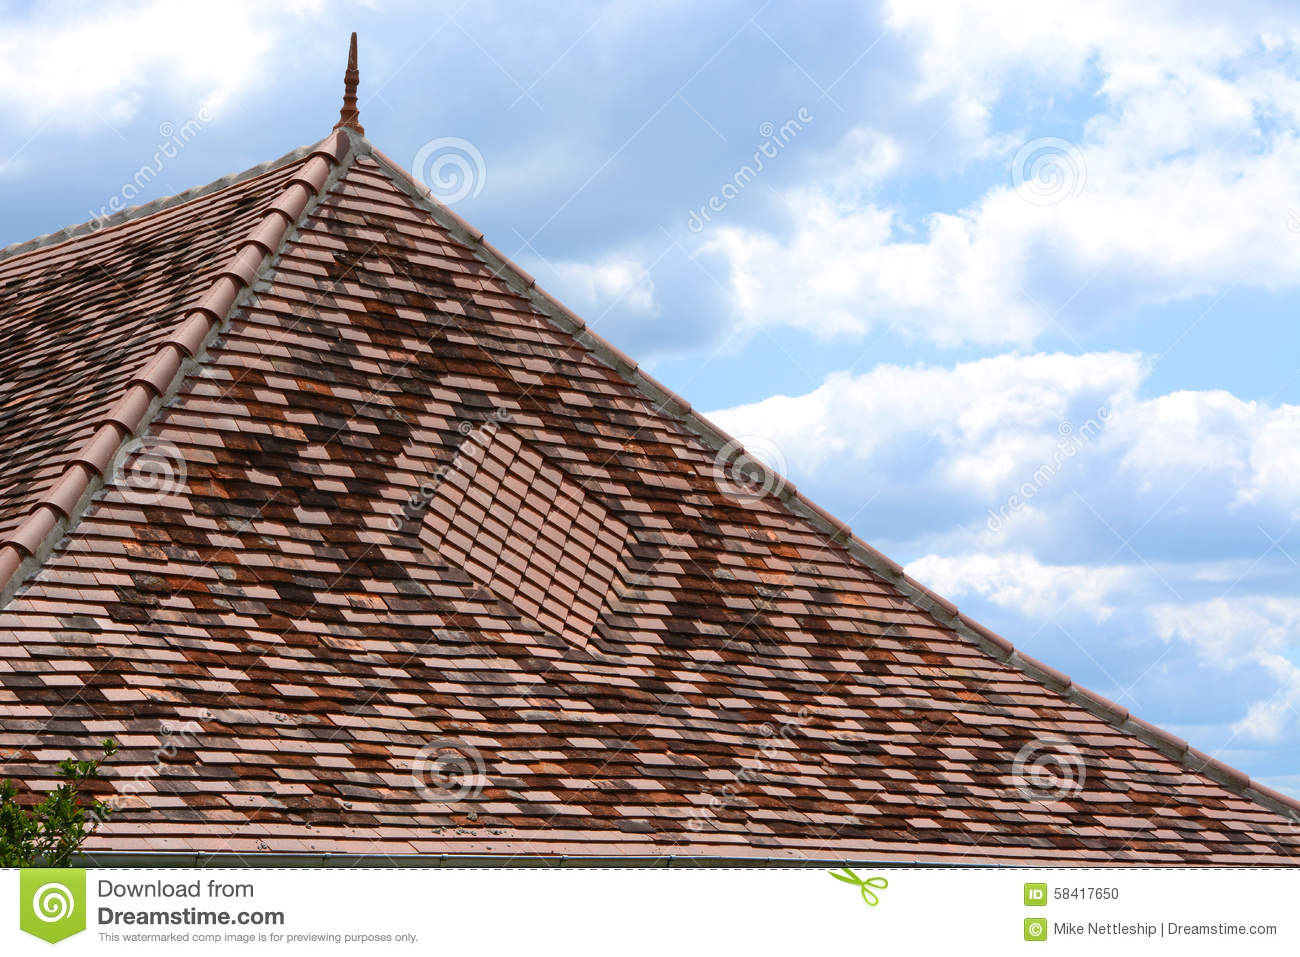 Decorative Tiled Roof With Finial Stock Photo Image